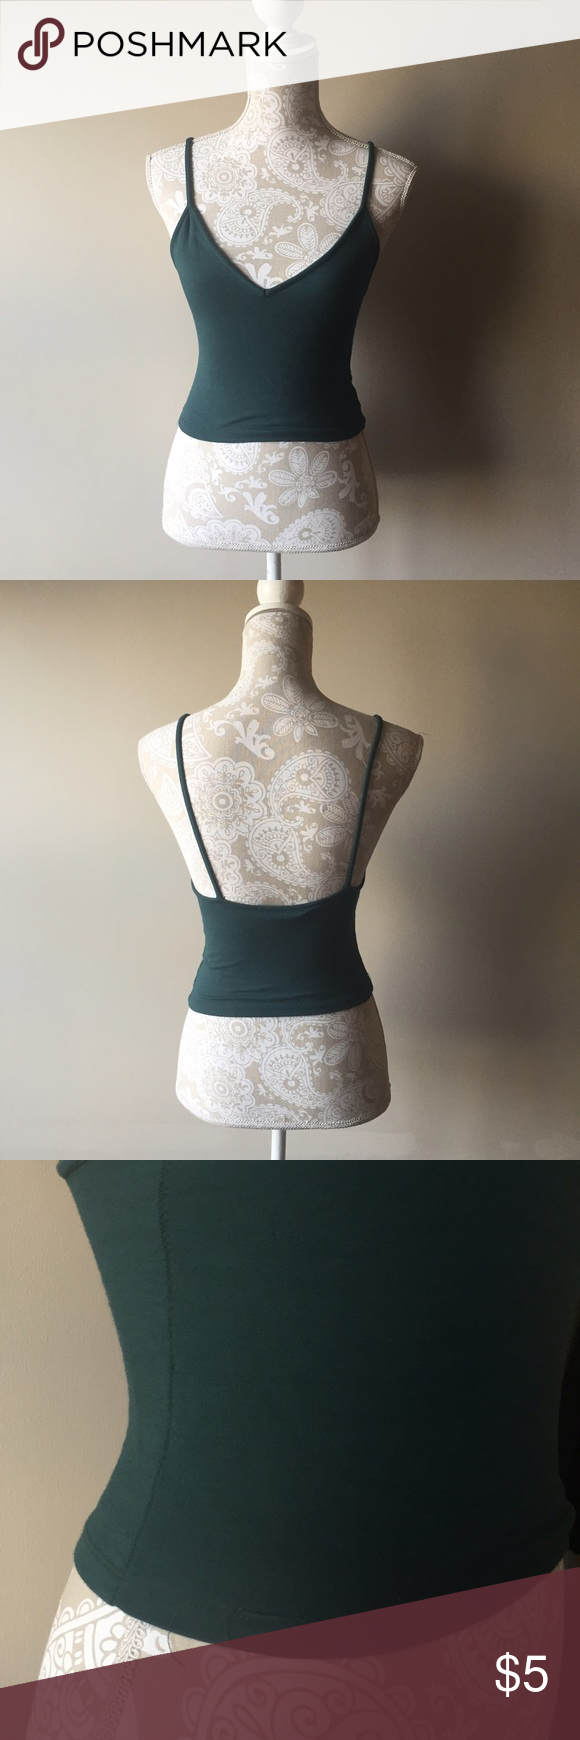 Brandy Melville dark green Joanne tank In very used condition. There is some minor pilling all over the shirt and the hem has unraveled on the bottom. Priced accordingly. 💎all $5 items are 5 for 15💎 💎add items to bundle💎 💎send offer for $15 and I will accept💎 💎20% off bundles on all other items💎 Brandy Melville Tops Tank Tops